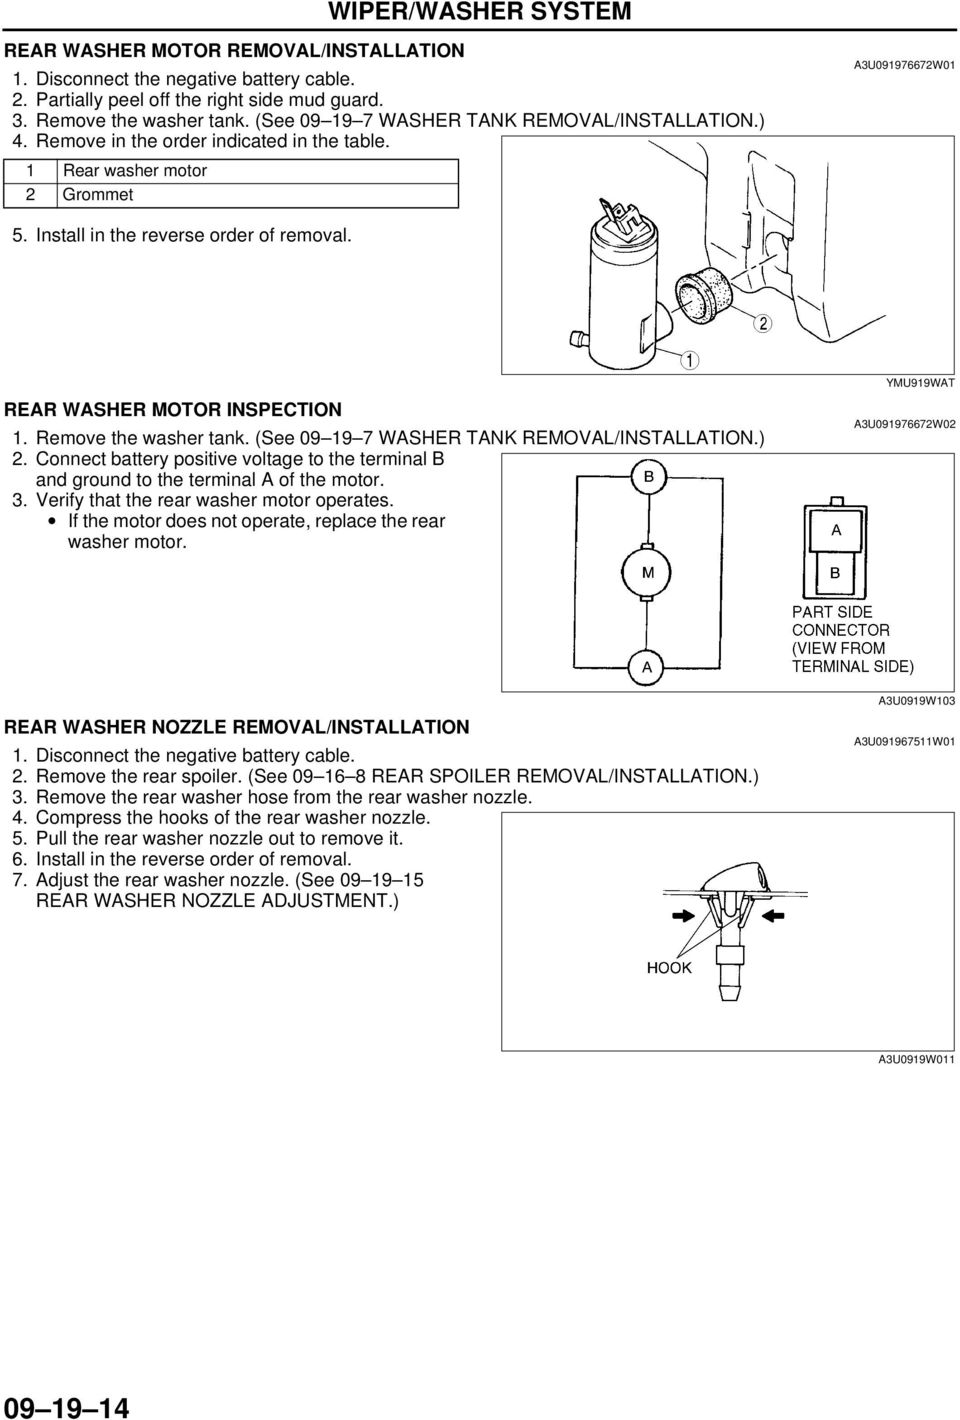 Nissan Sentra Service Manual: Front wiper motor ground circuit